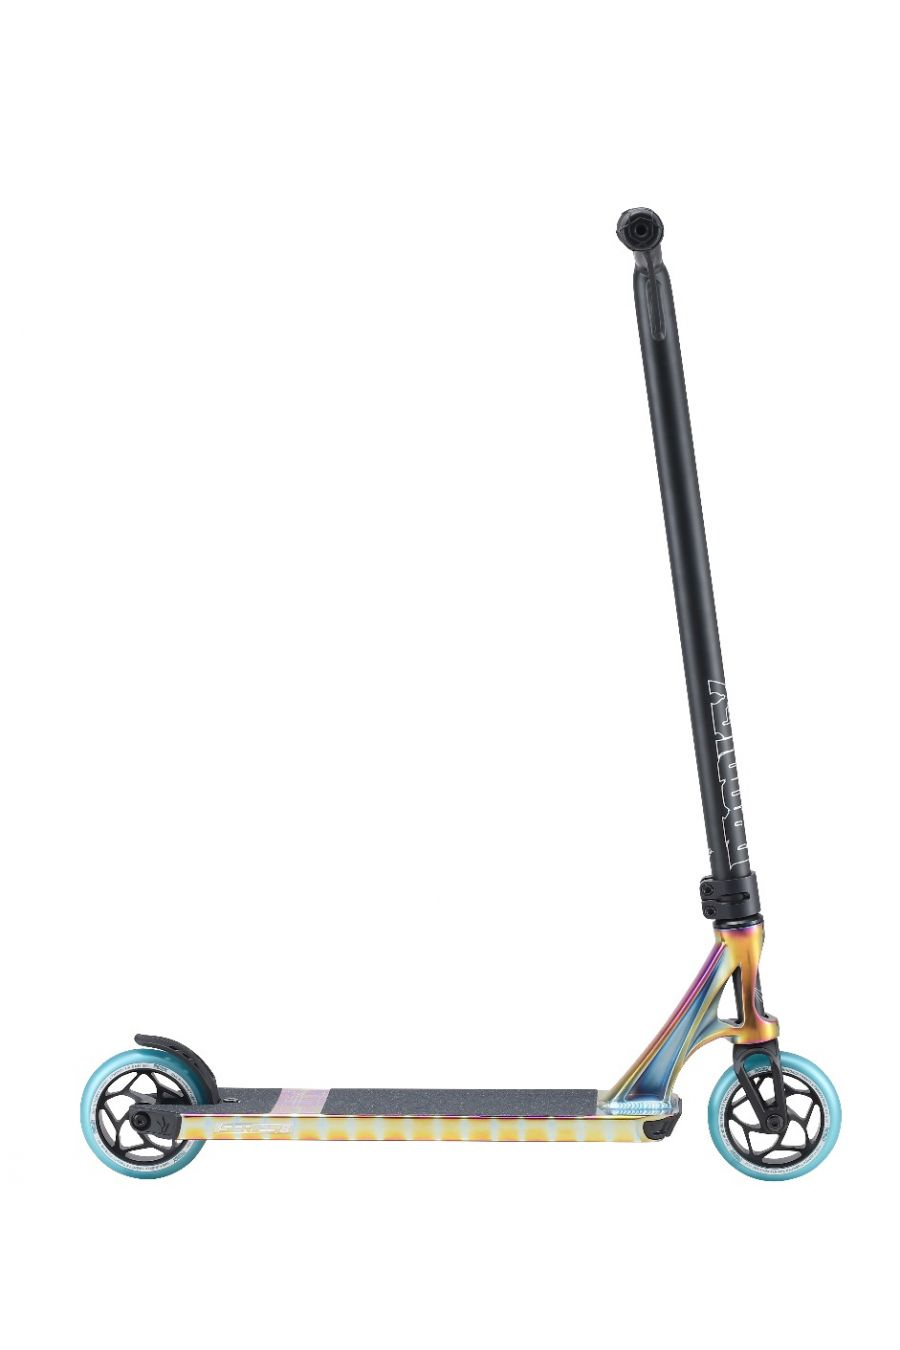 Envy Prodigy S8 Complete Scooter (Oil Slick)